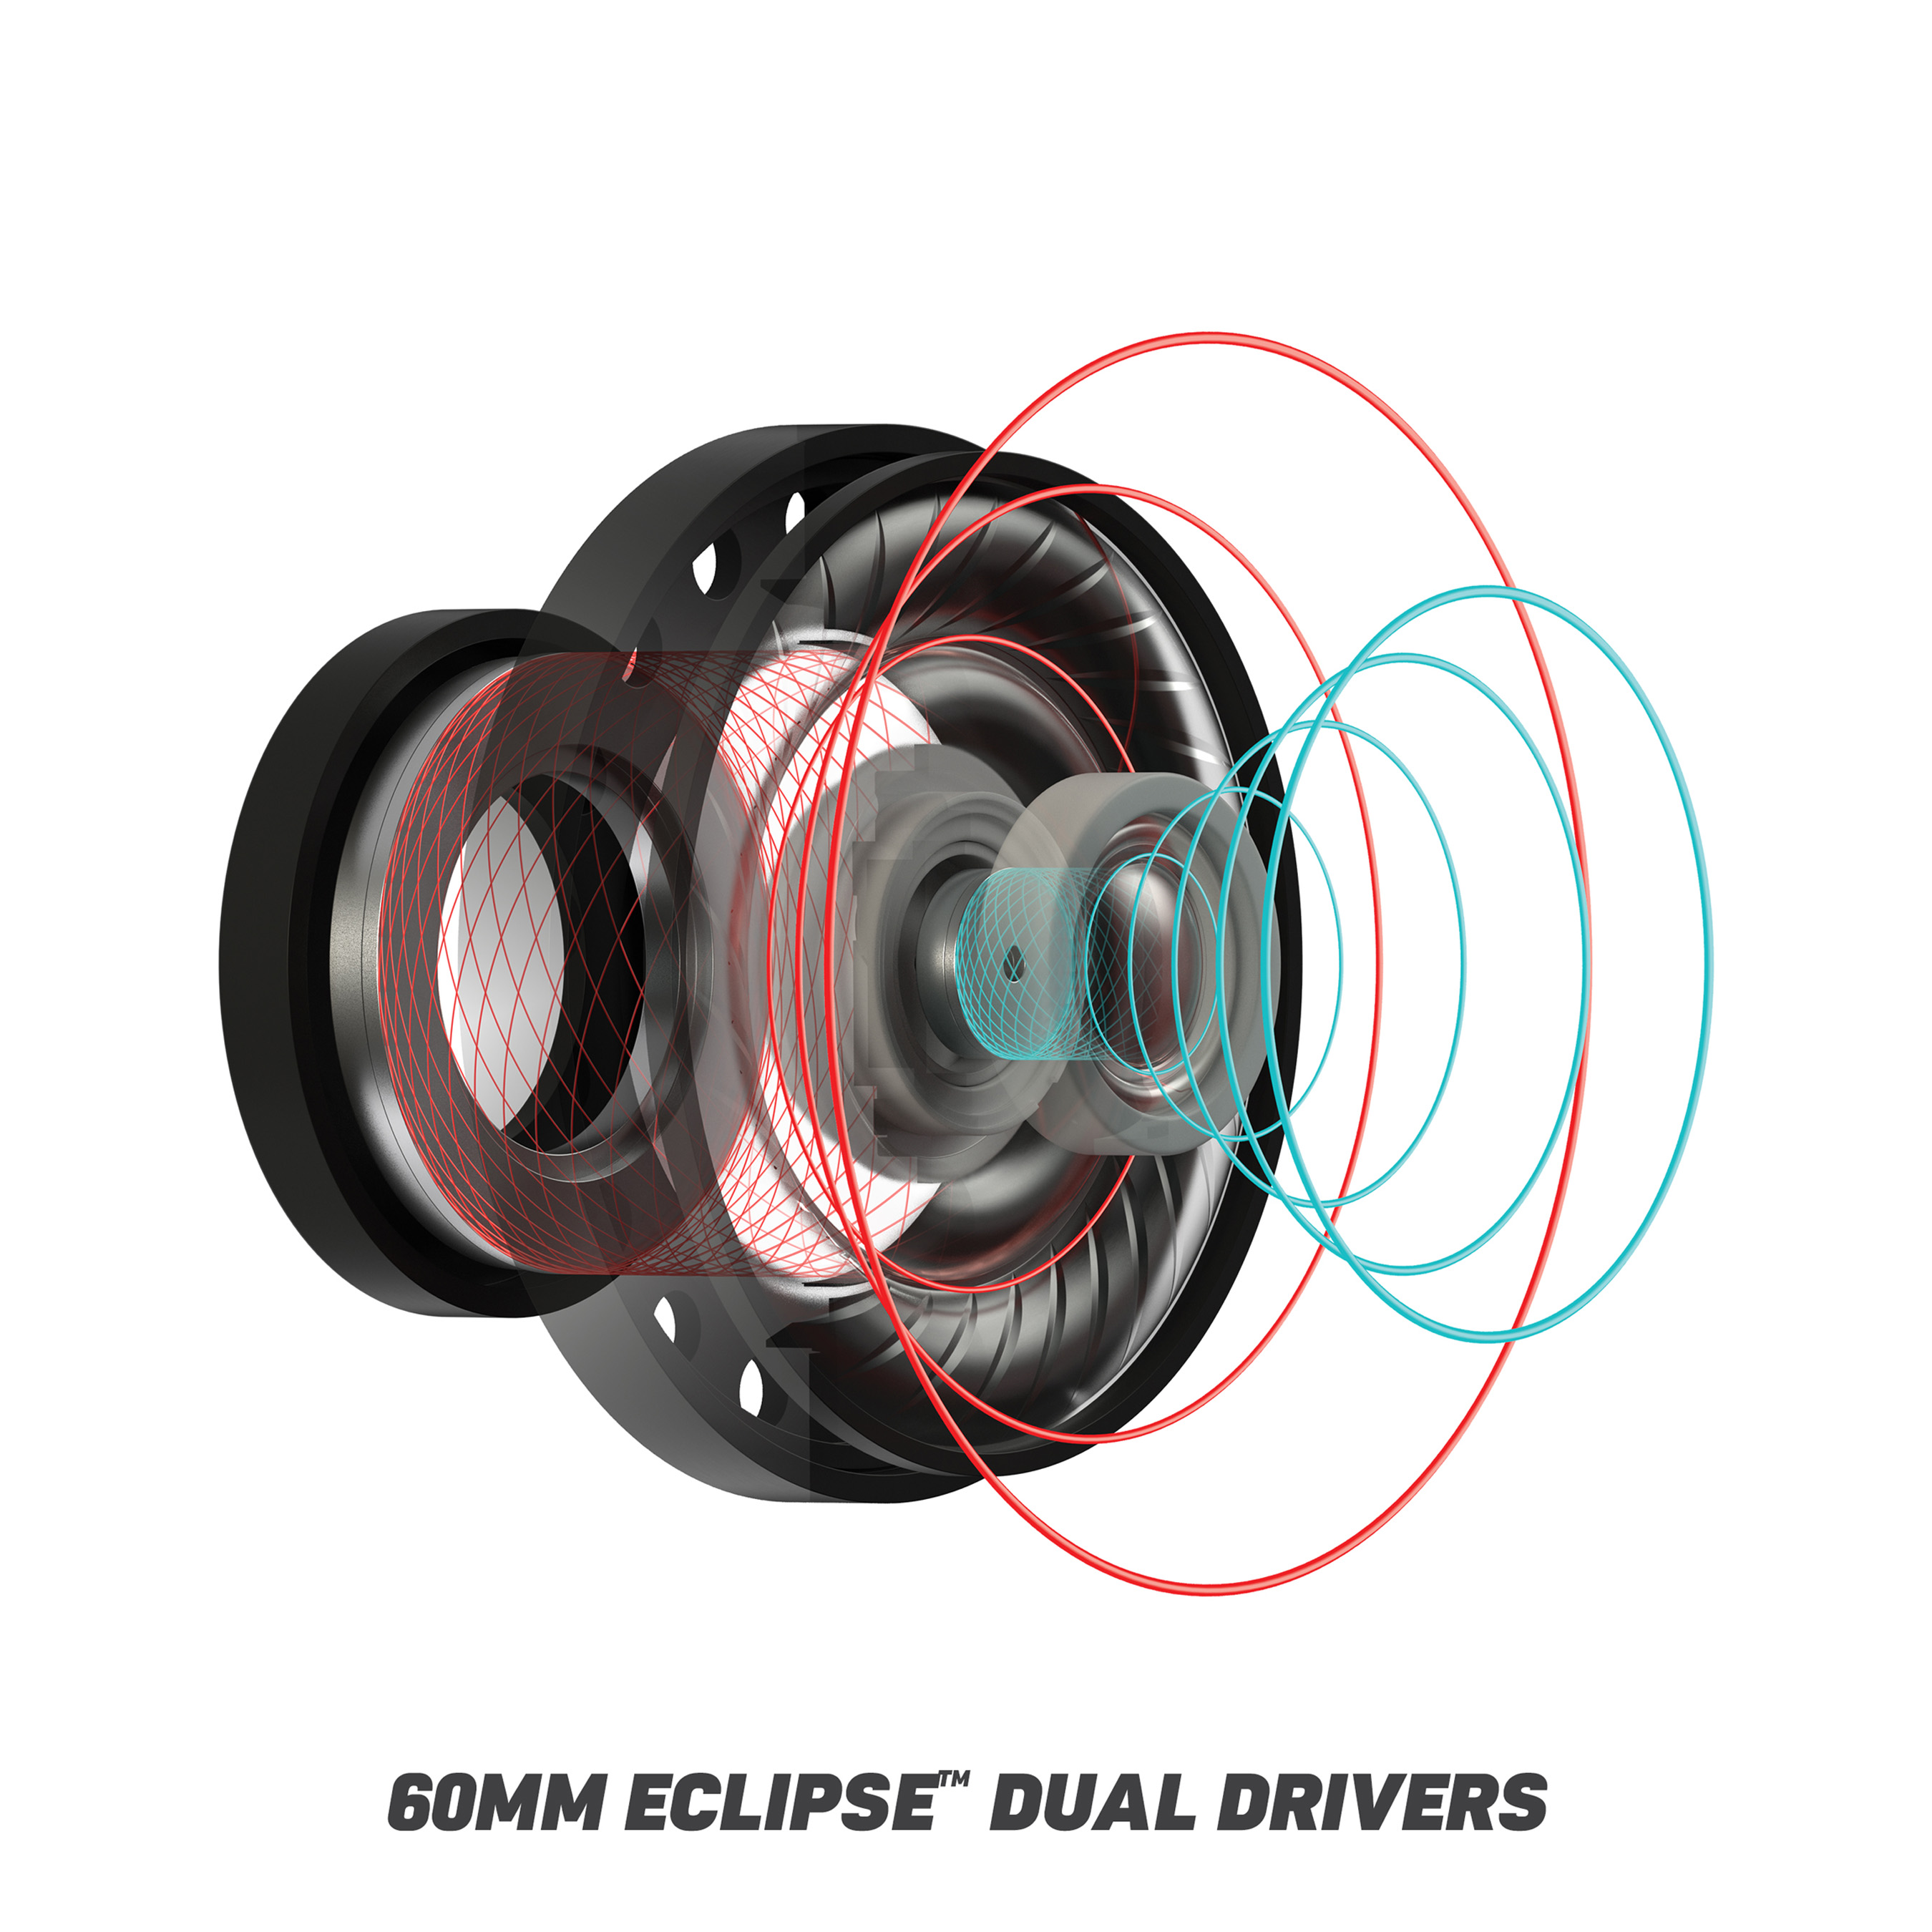 Turtle Beach's patented, first-of-their-kind 60mm Eclipse™ Dual Drivers deliver unprecedented sound quality at every frequency.